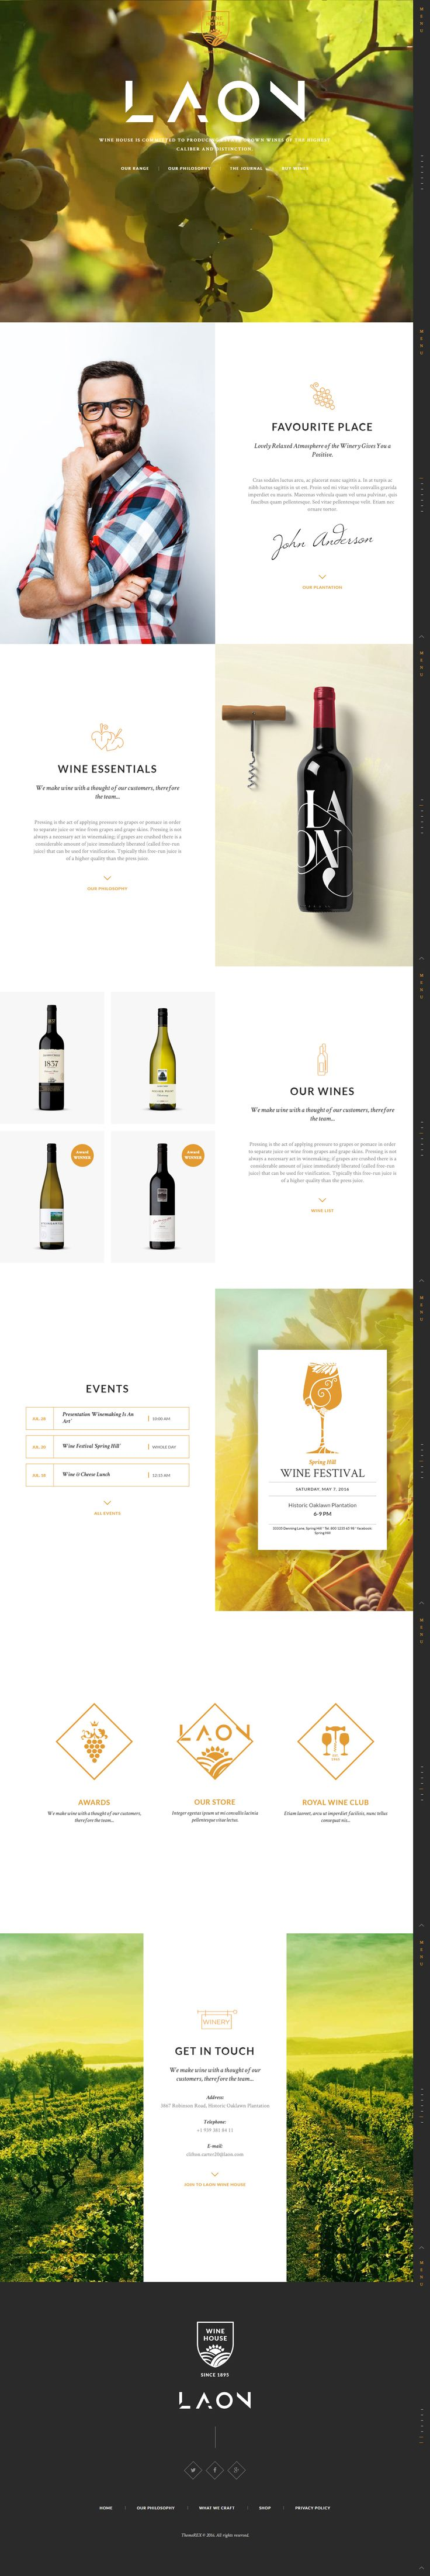 Laon is Premium Responsive Retina #WordPress eCommerce Theme. #WooCommerce. Visual Composer. Events #Calendar. Test free demo at: http://www.responsivemiracle.com/laon-premium-responsive-wine-house-winery-wine-shop-wordpress-theme/